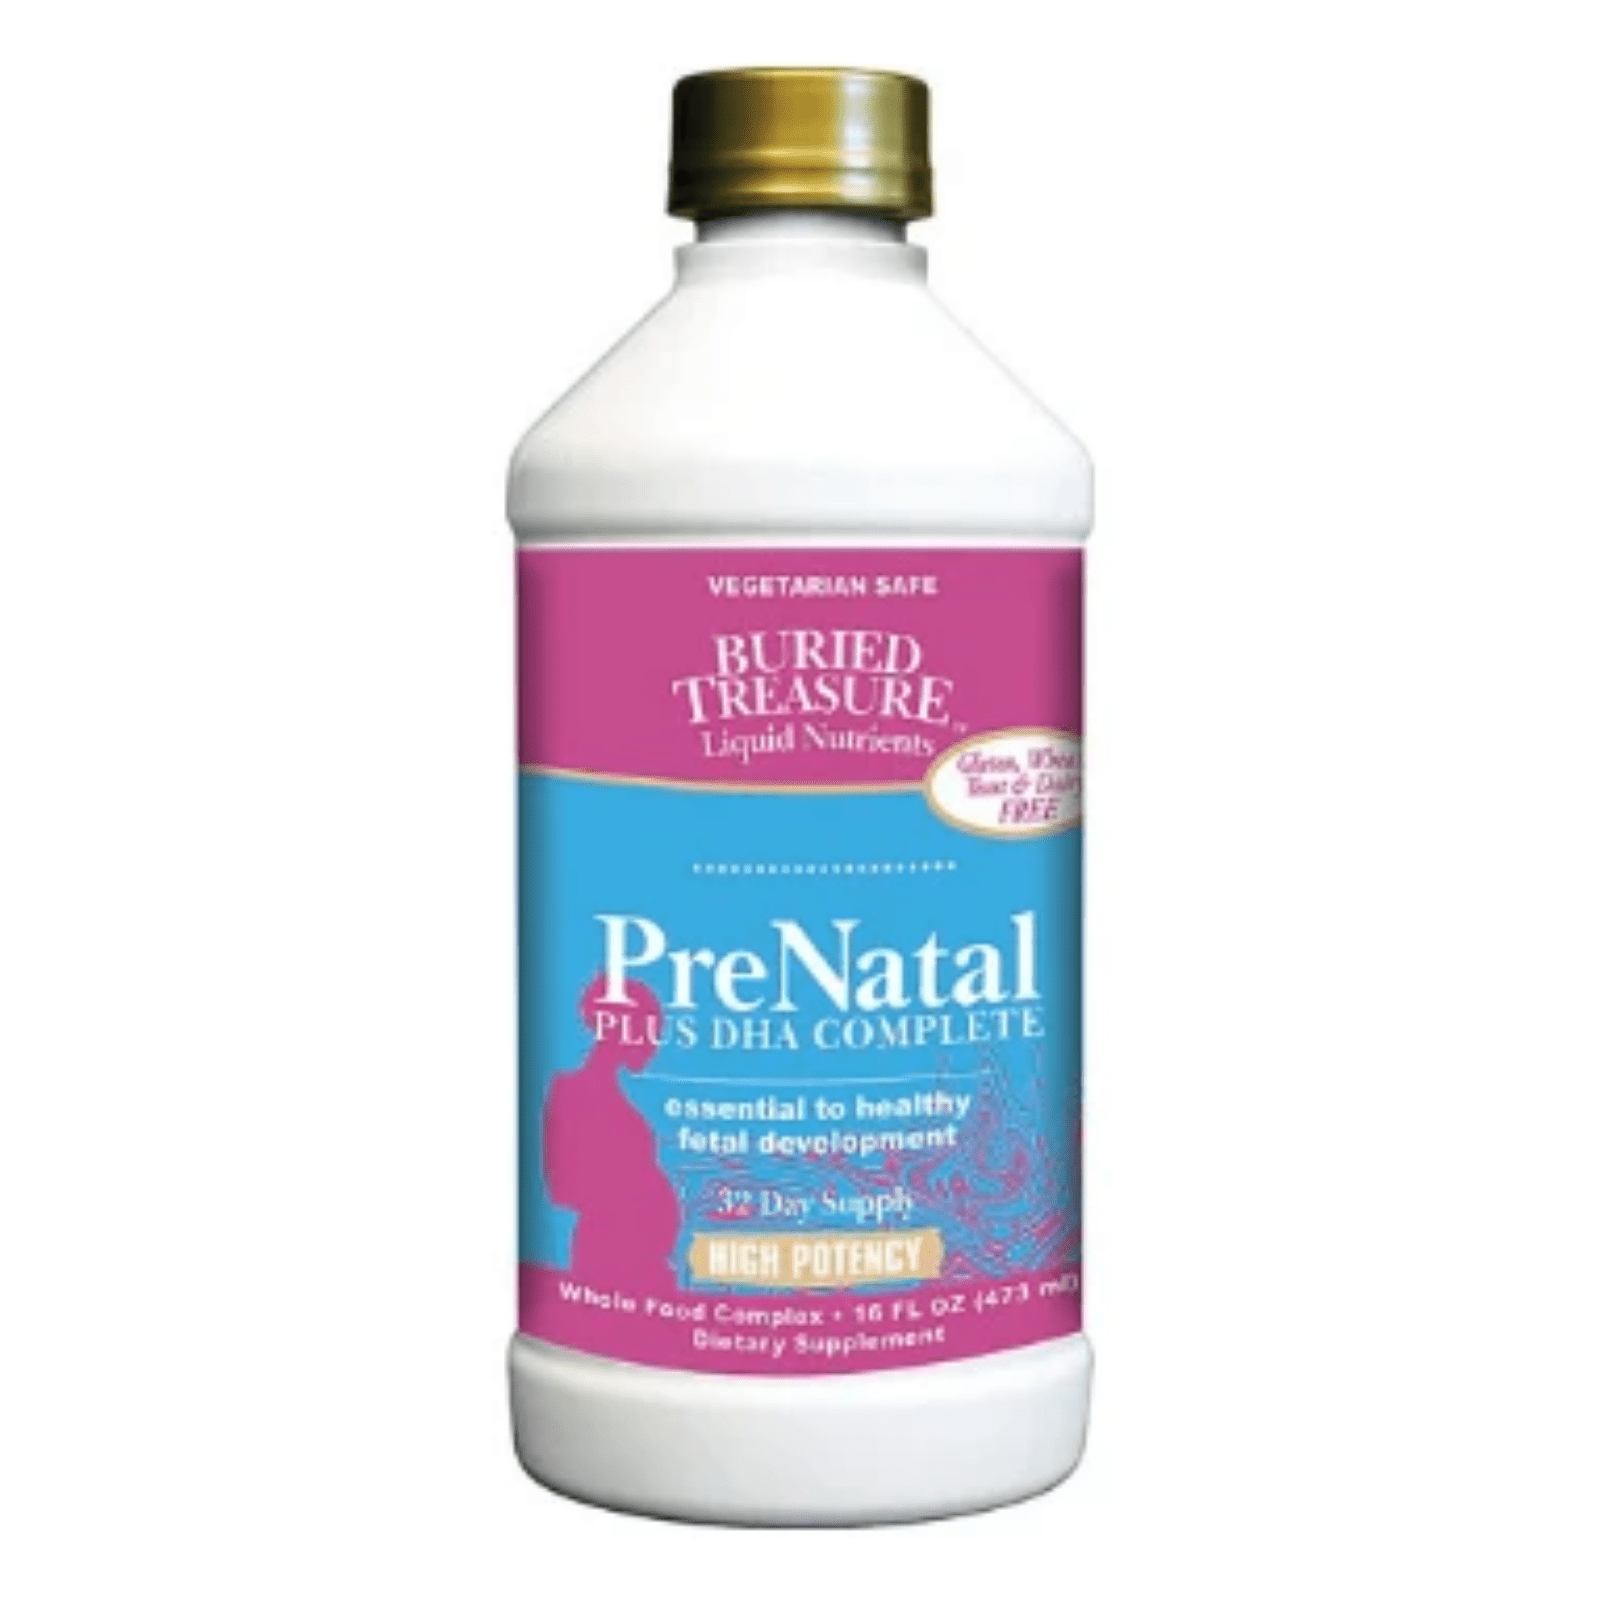 Buried Treasure - PreNatal Plus DHA Complete - 16 fl oz (473 ml) - AM VITAMINS